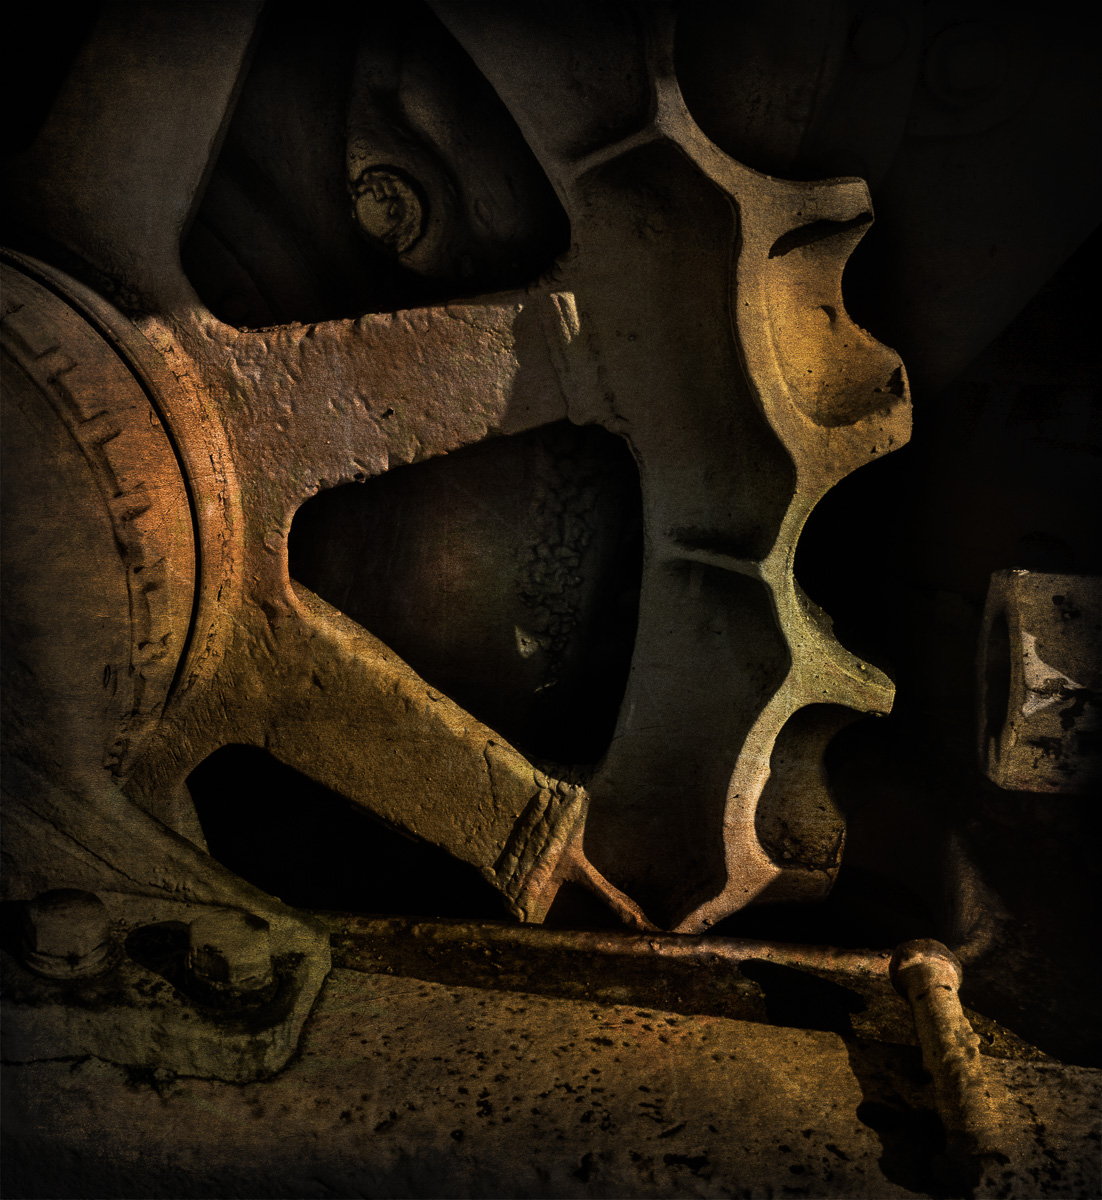 Blast Furnace Abstracts, Industrial Abstracts